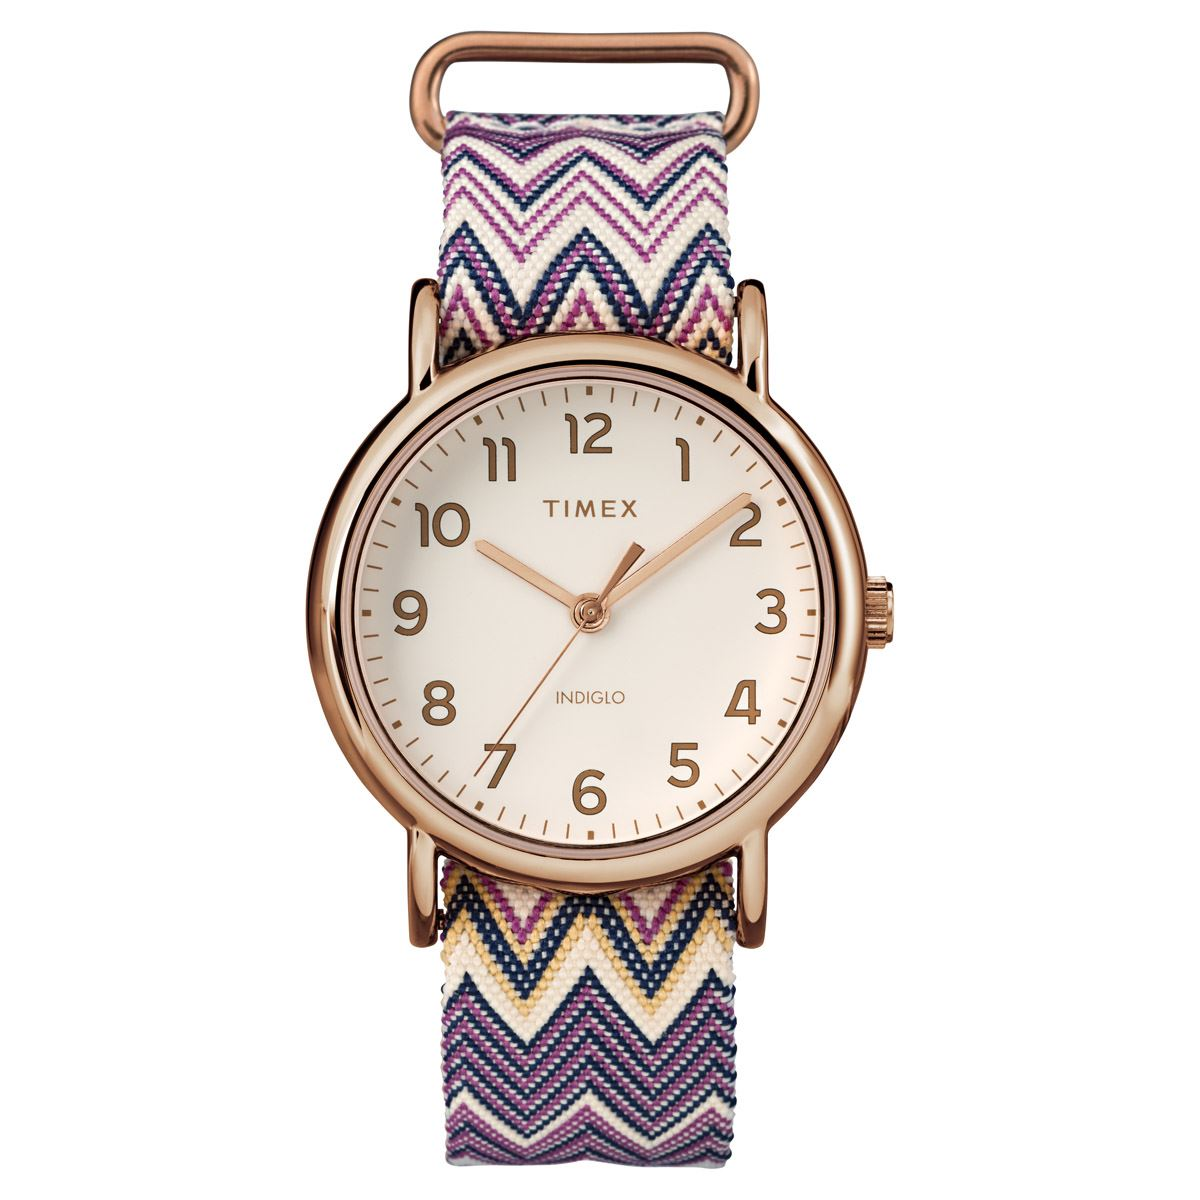 Reloj timex tw2r59000 dama  fashion  - Sanborns